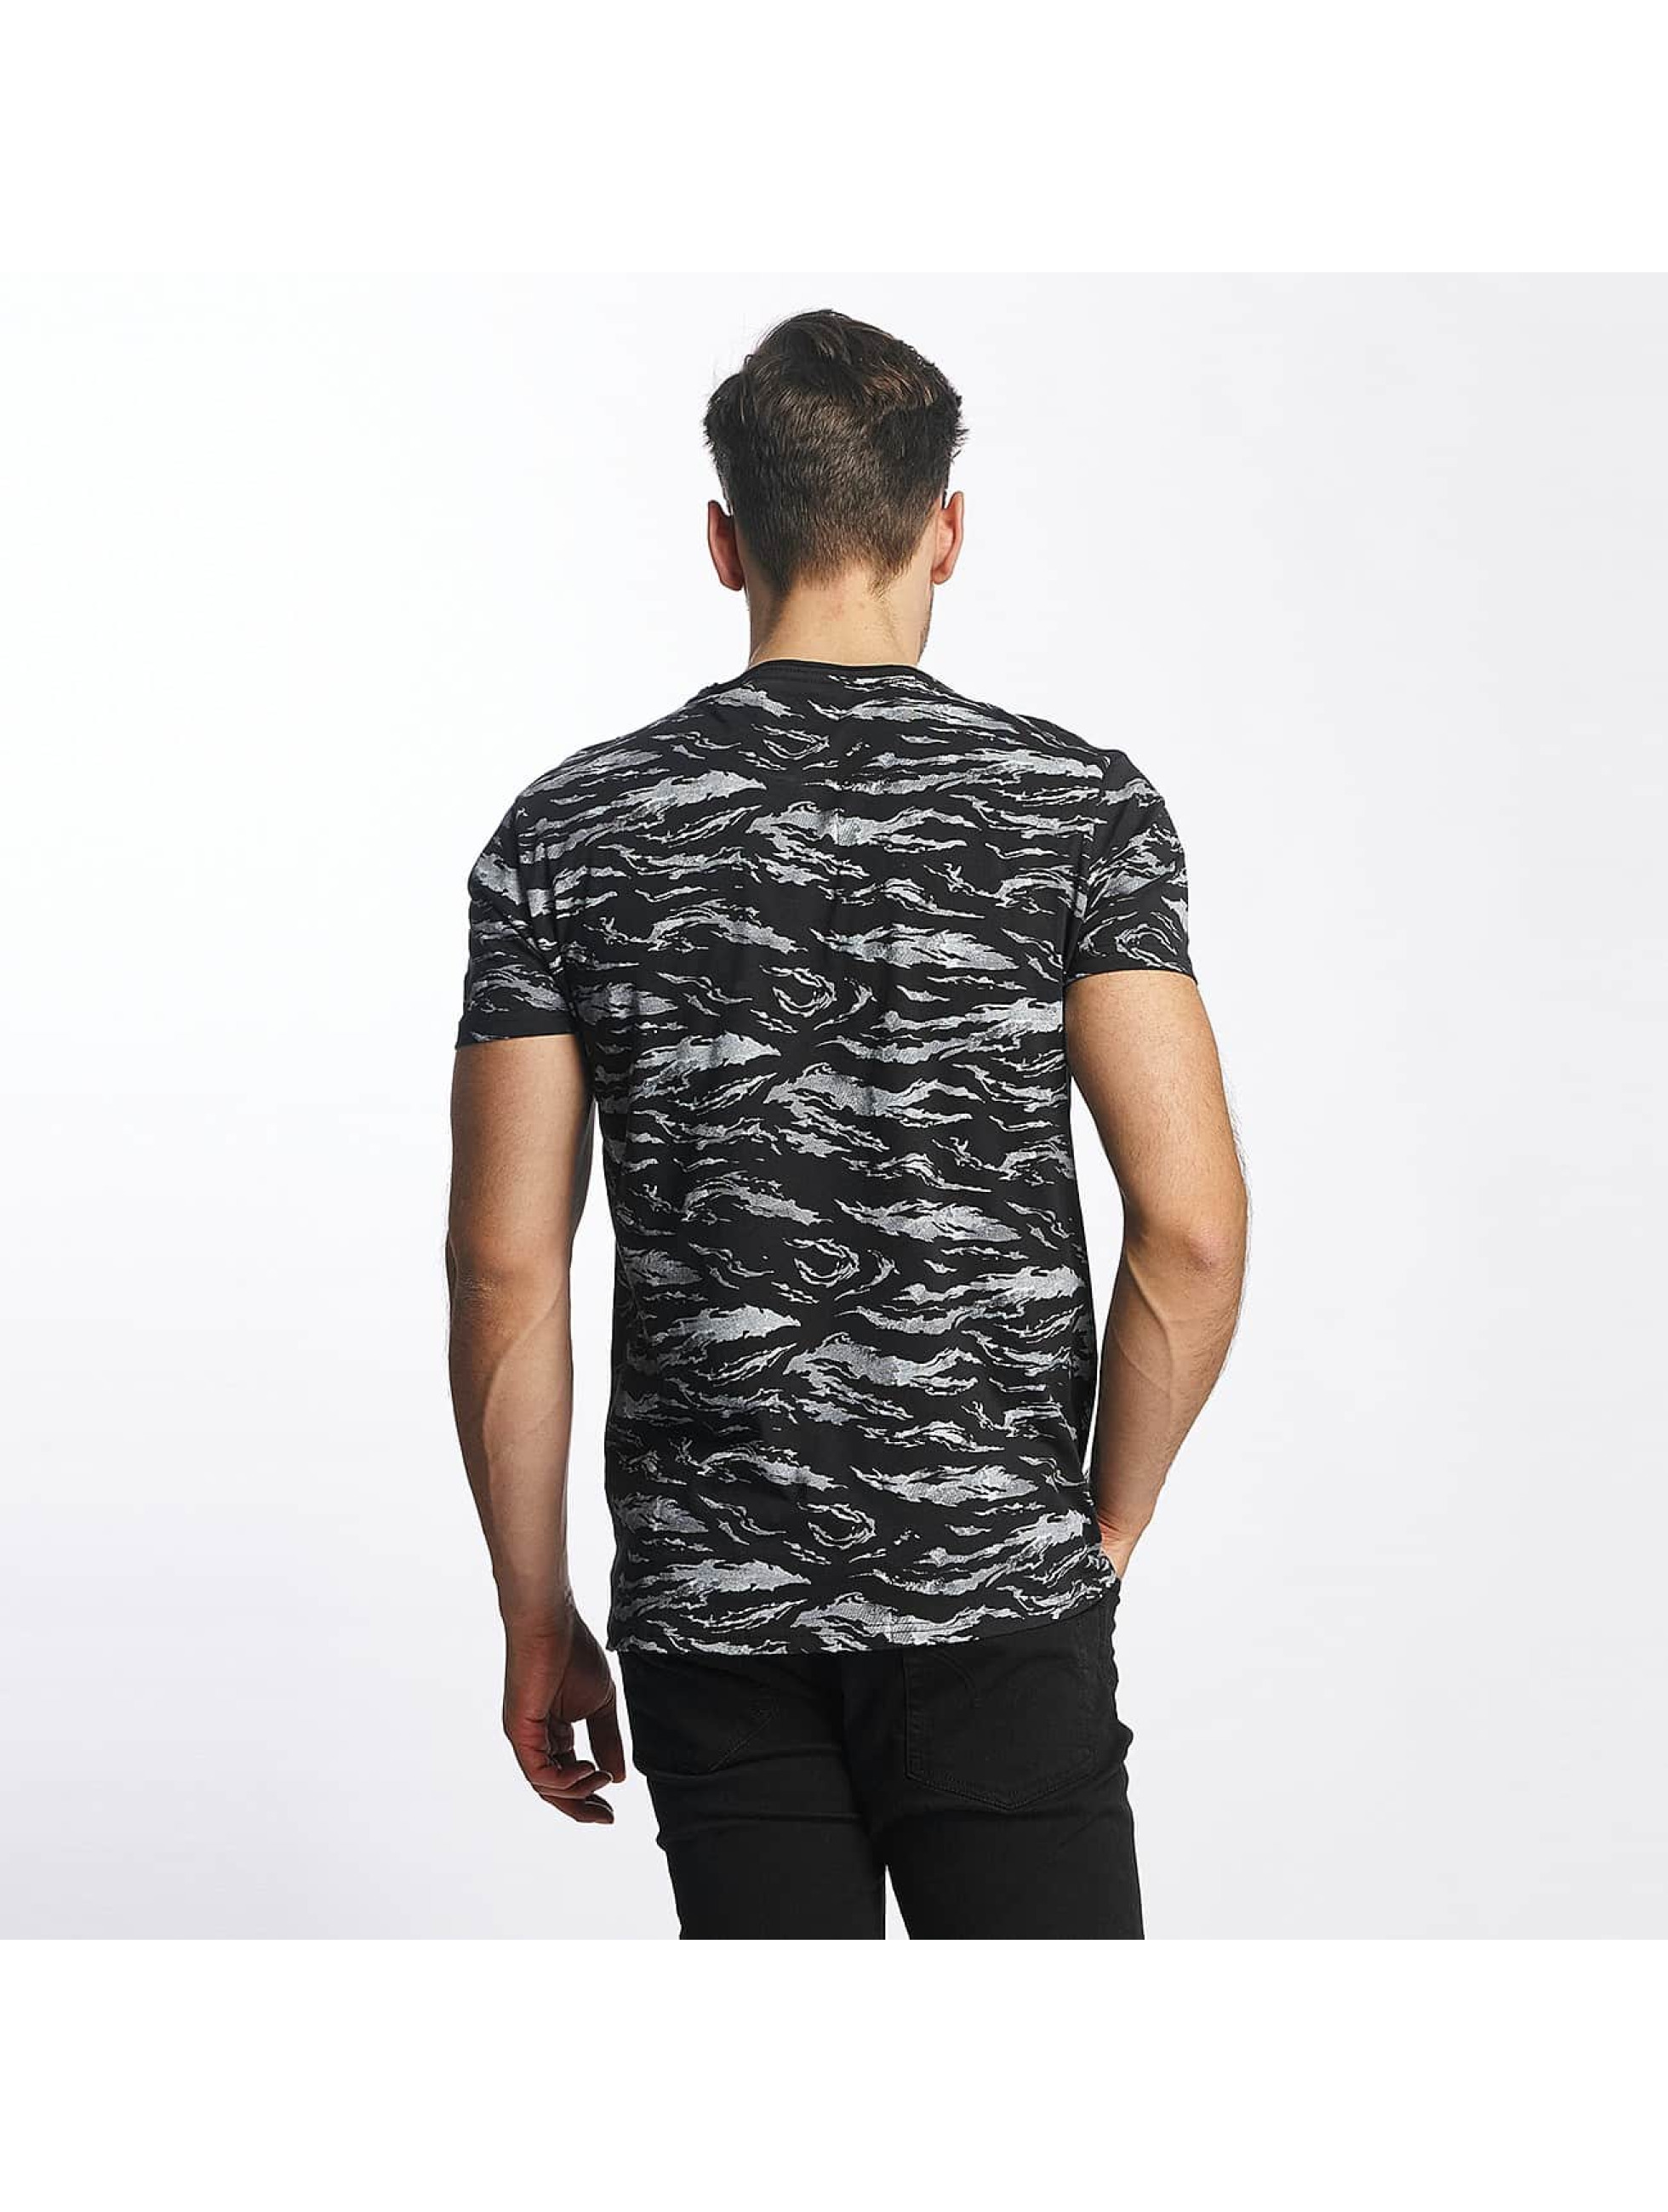 SHINE Original Camiseta All Over Print negro